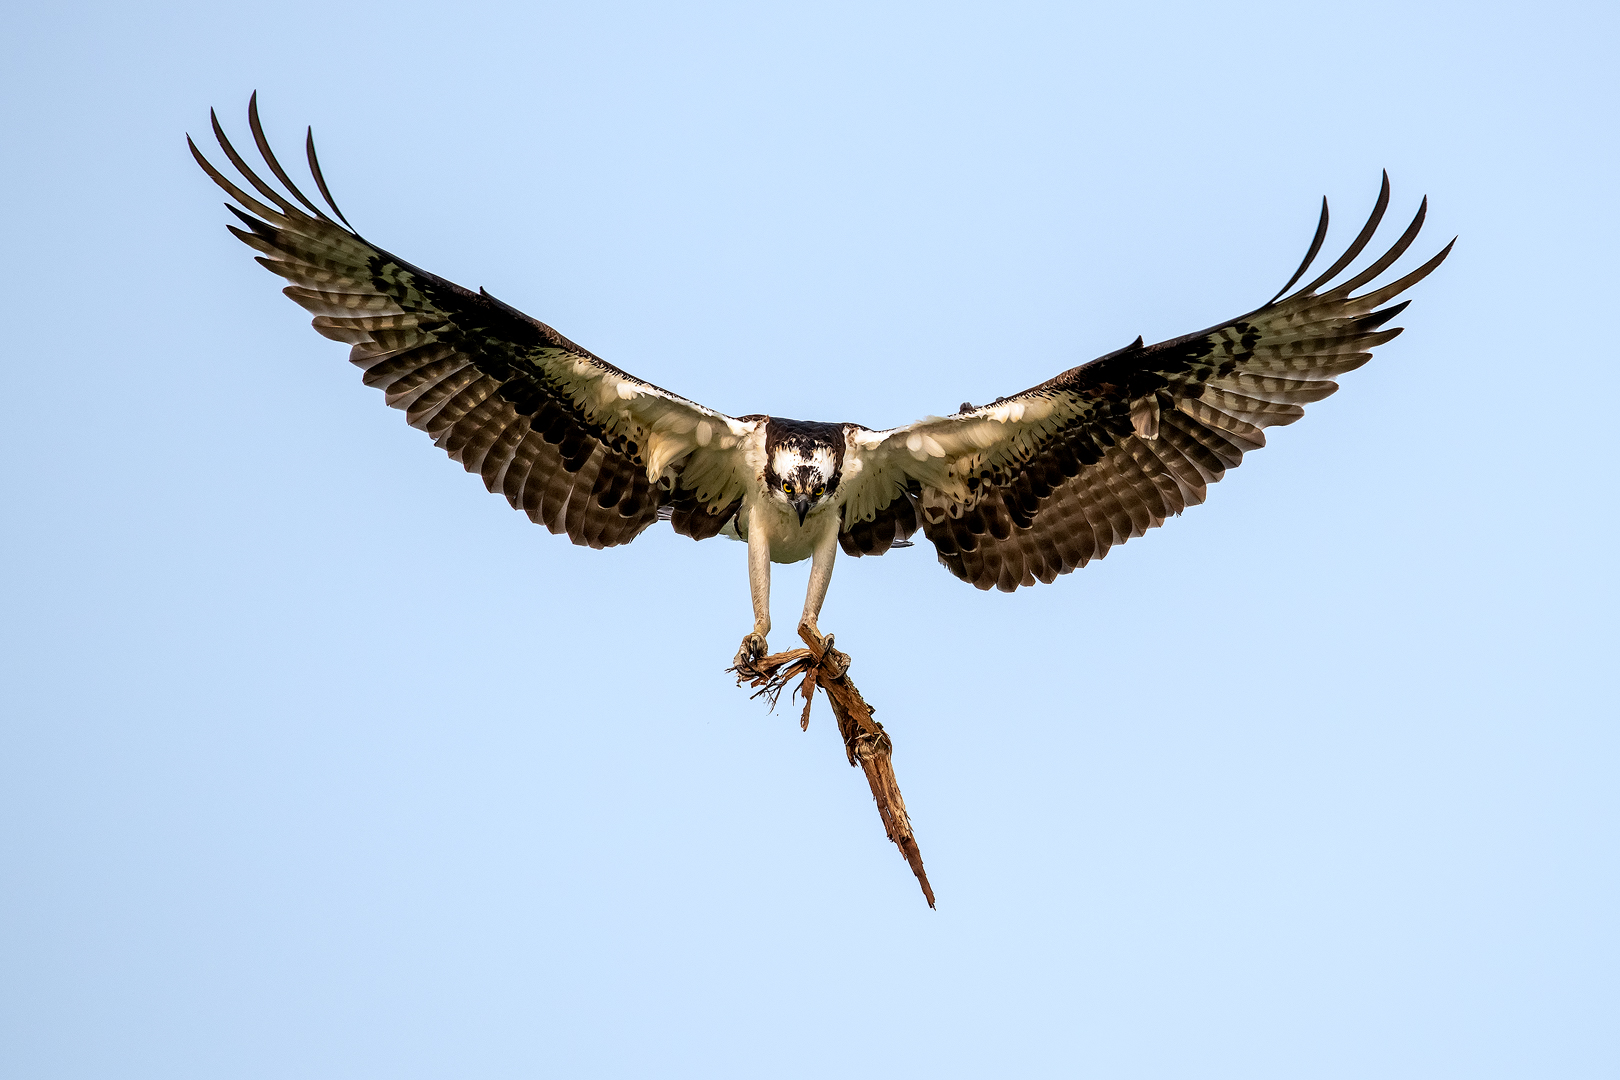 Paul Janosi – Osprey with nesting material – 3RD